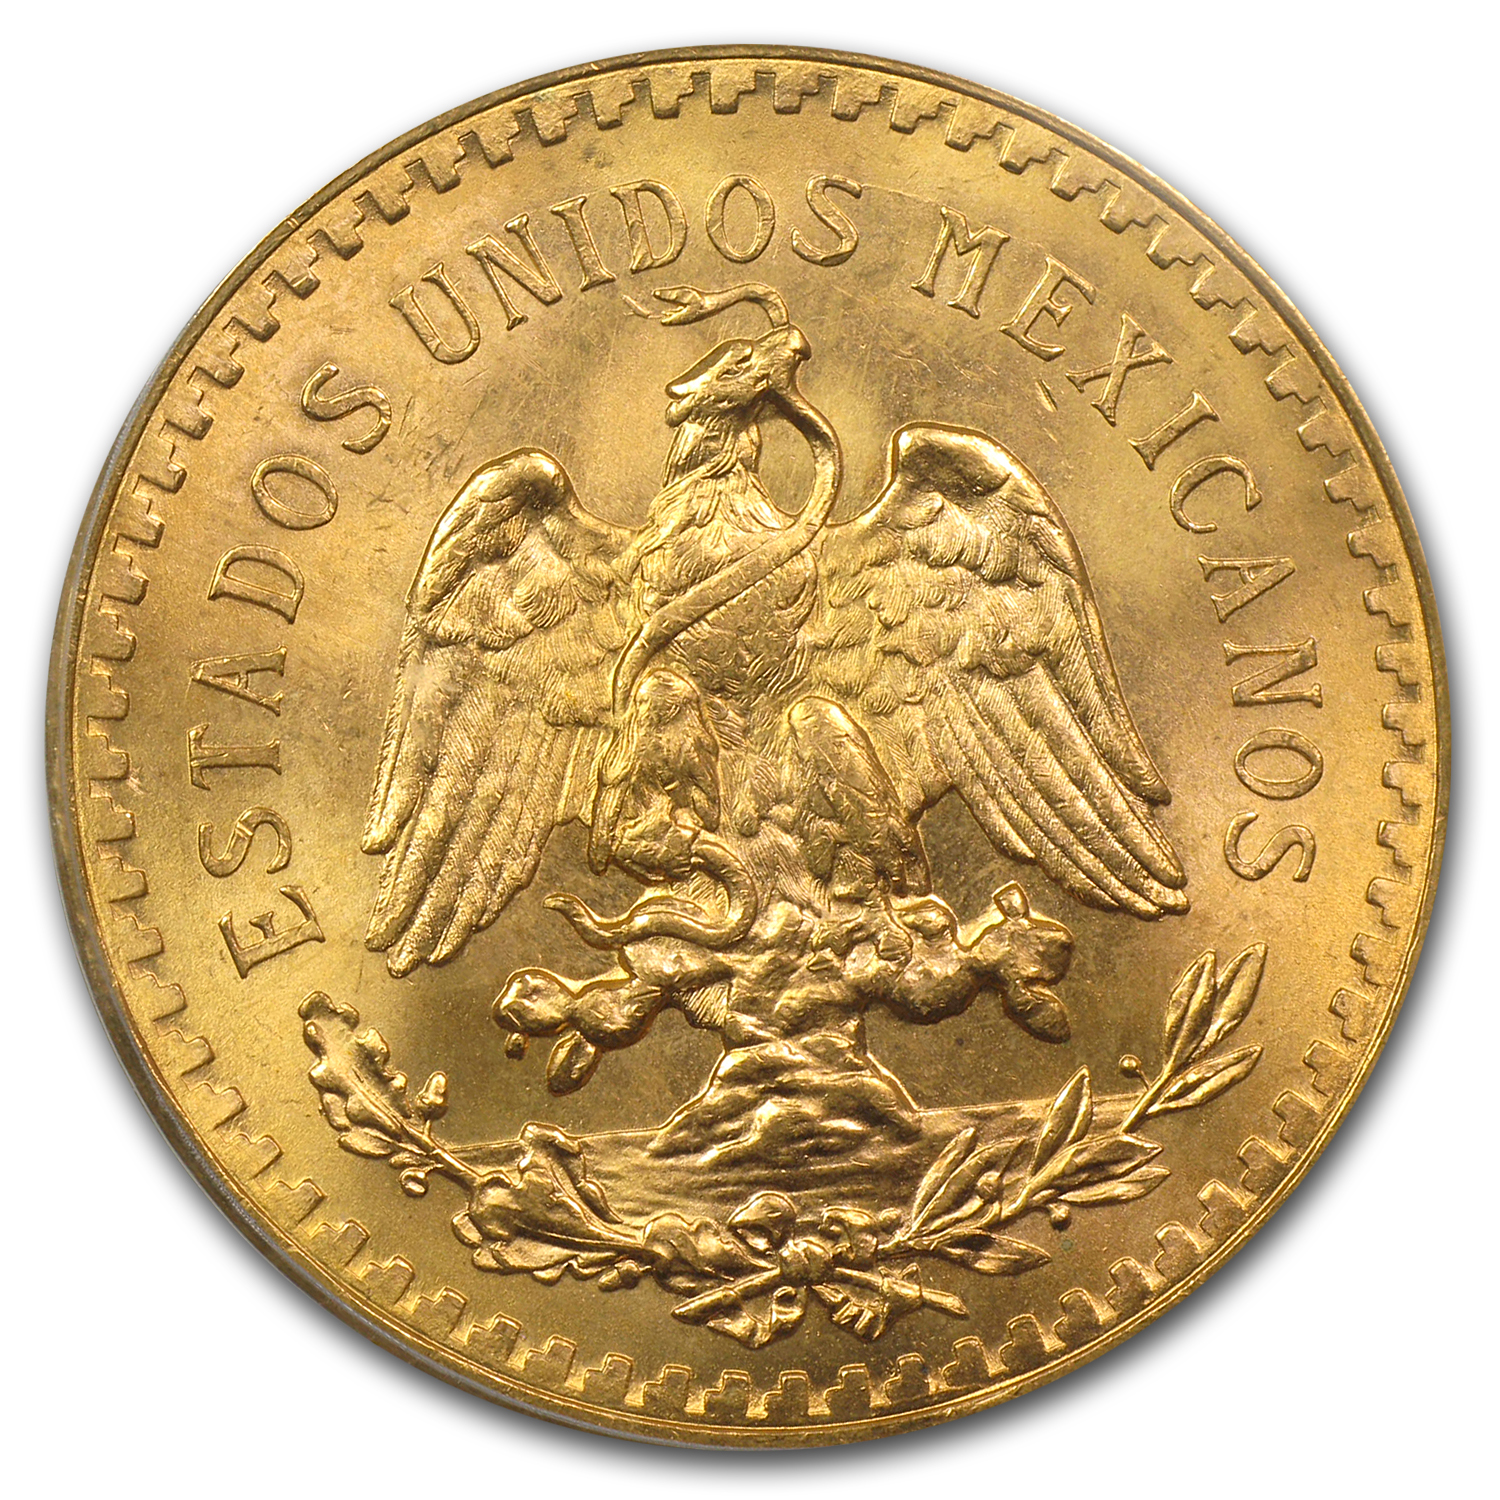 1947 Mexico Gold 50 Pesos MS-65 PCGS